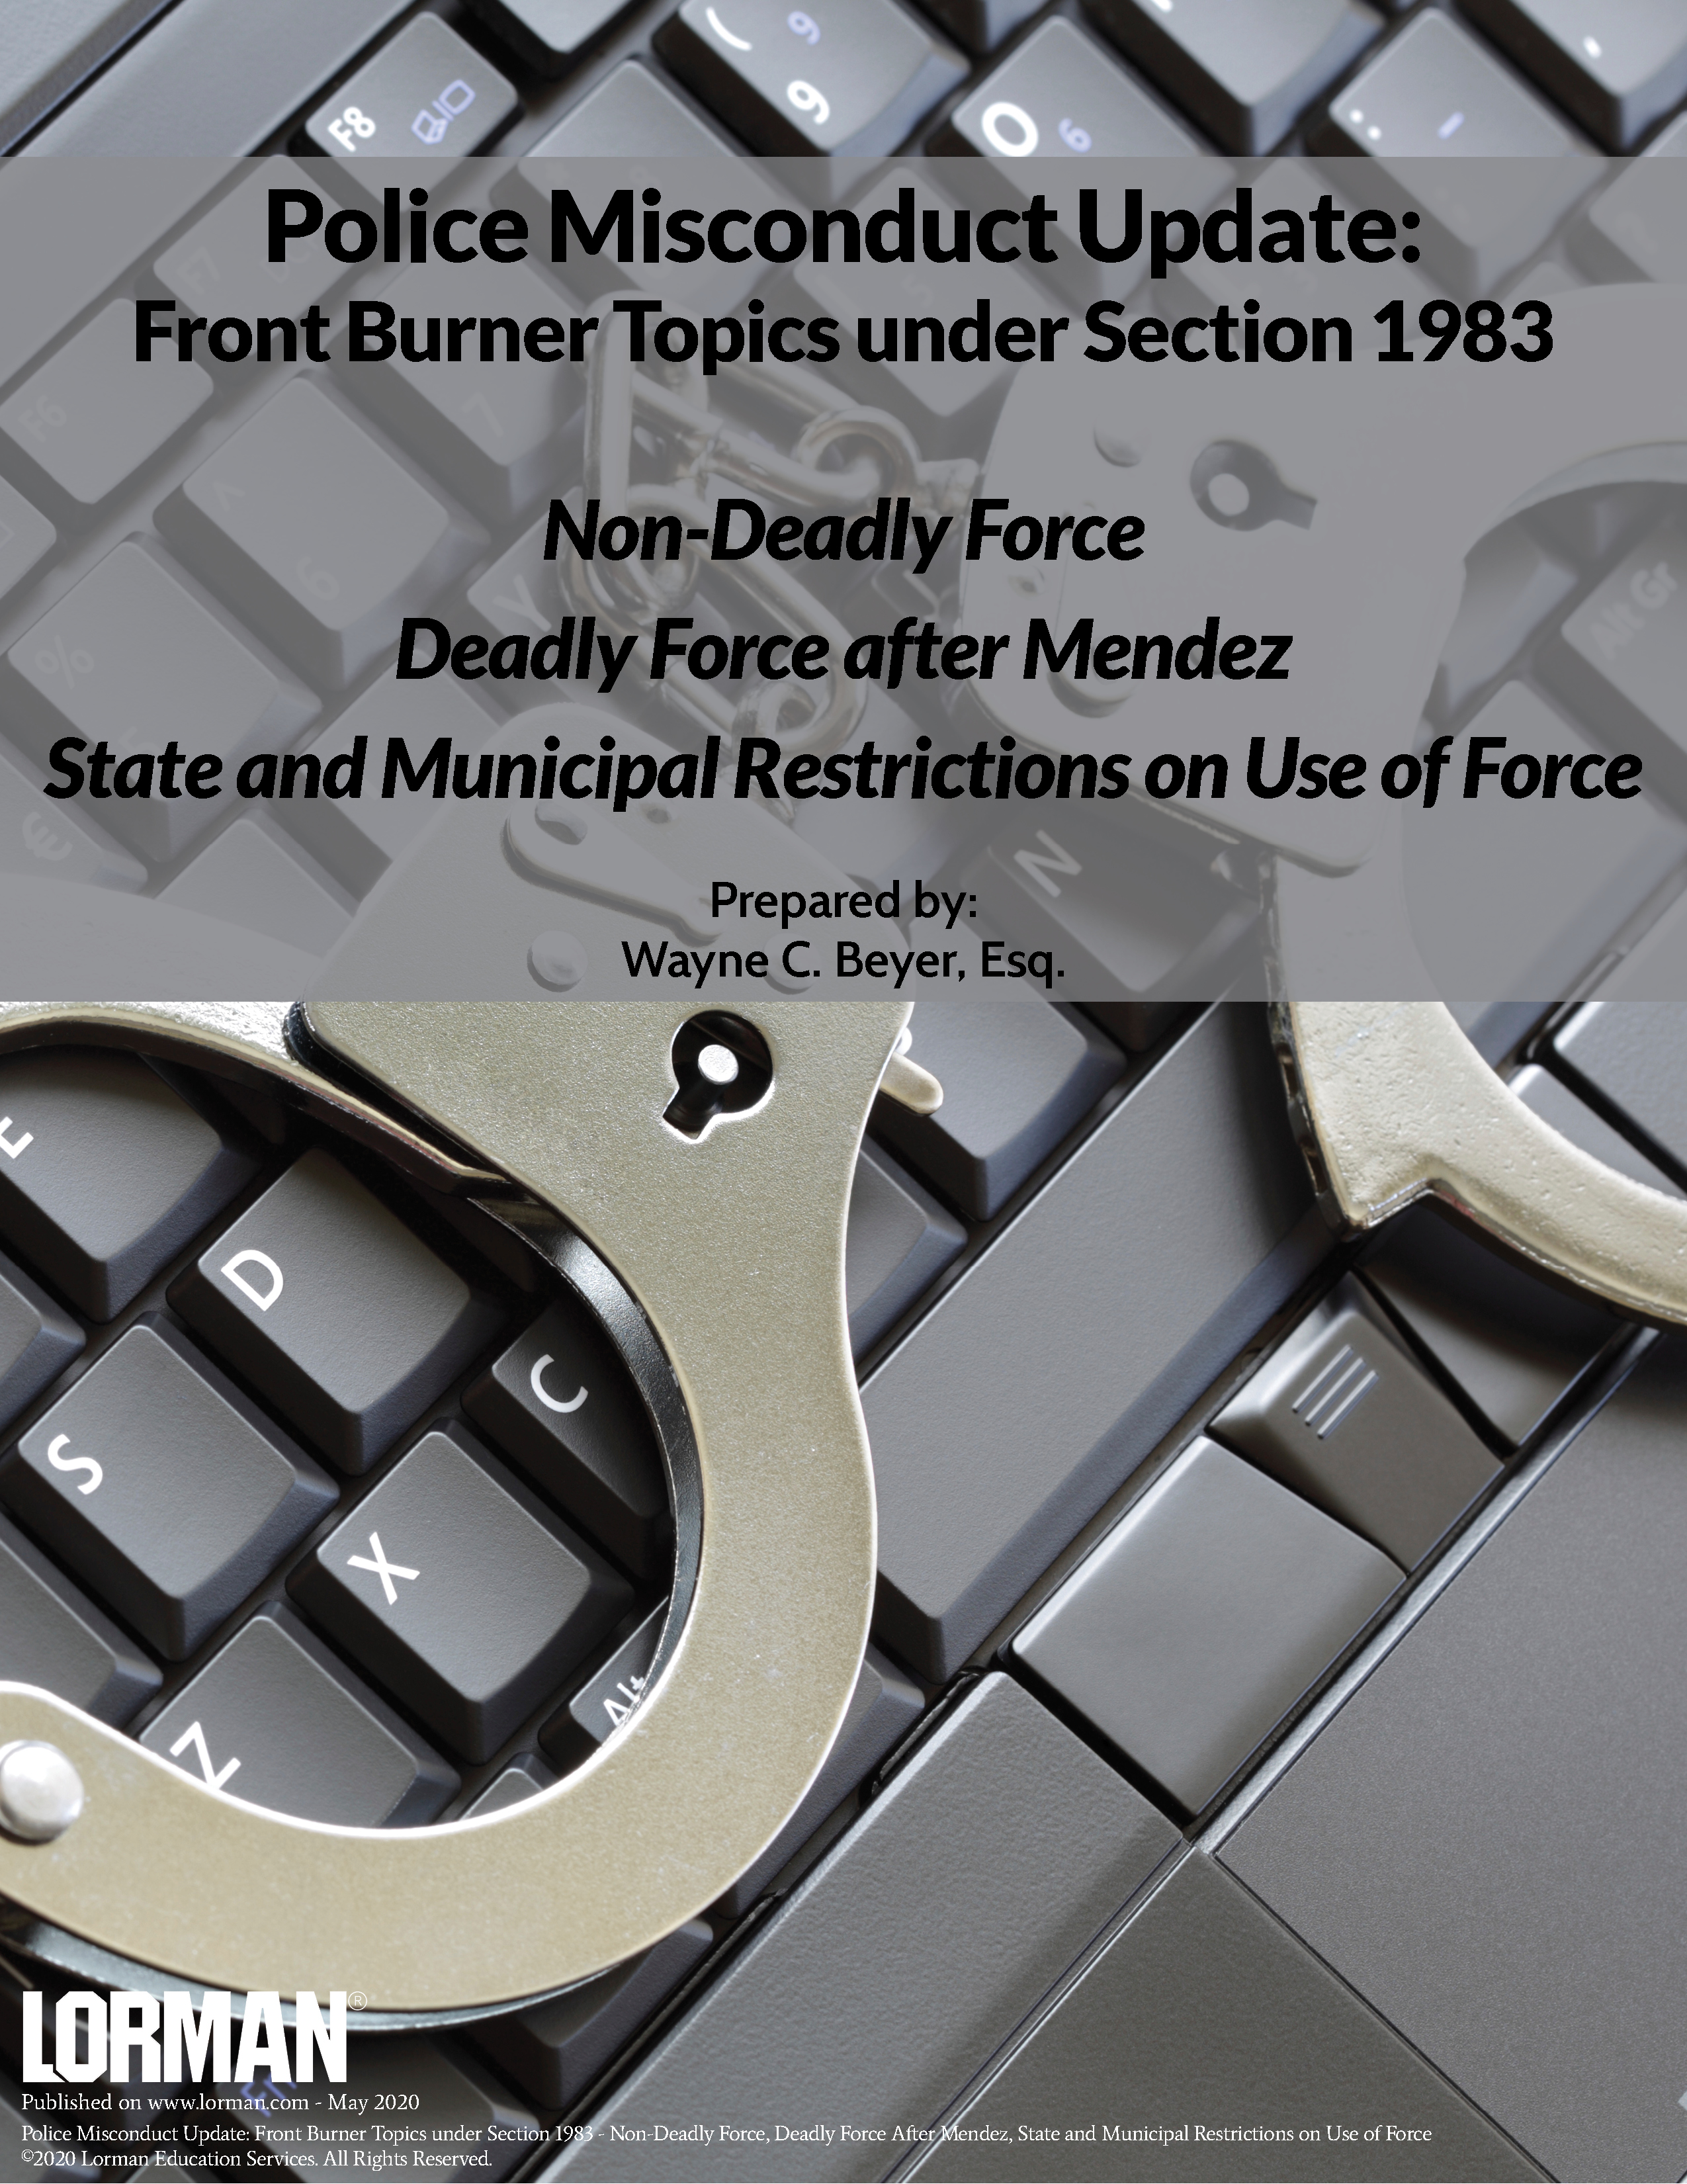 Police Misconduct Update: Non-Deadly Force and Deadly Force After Mendez